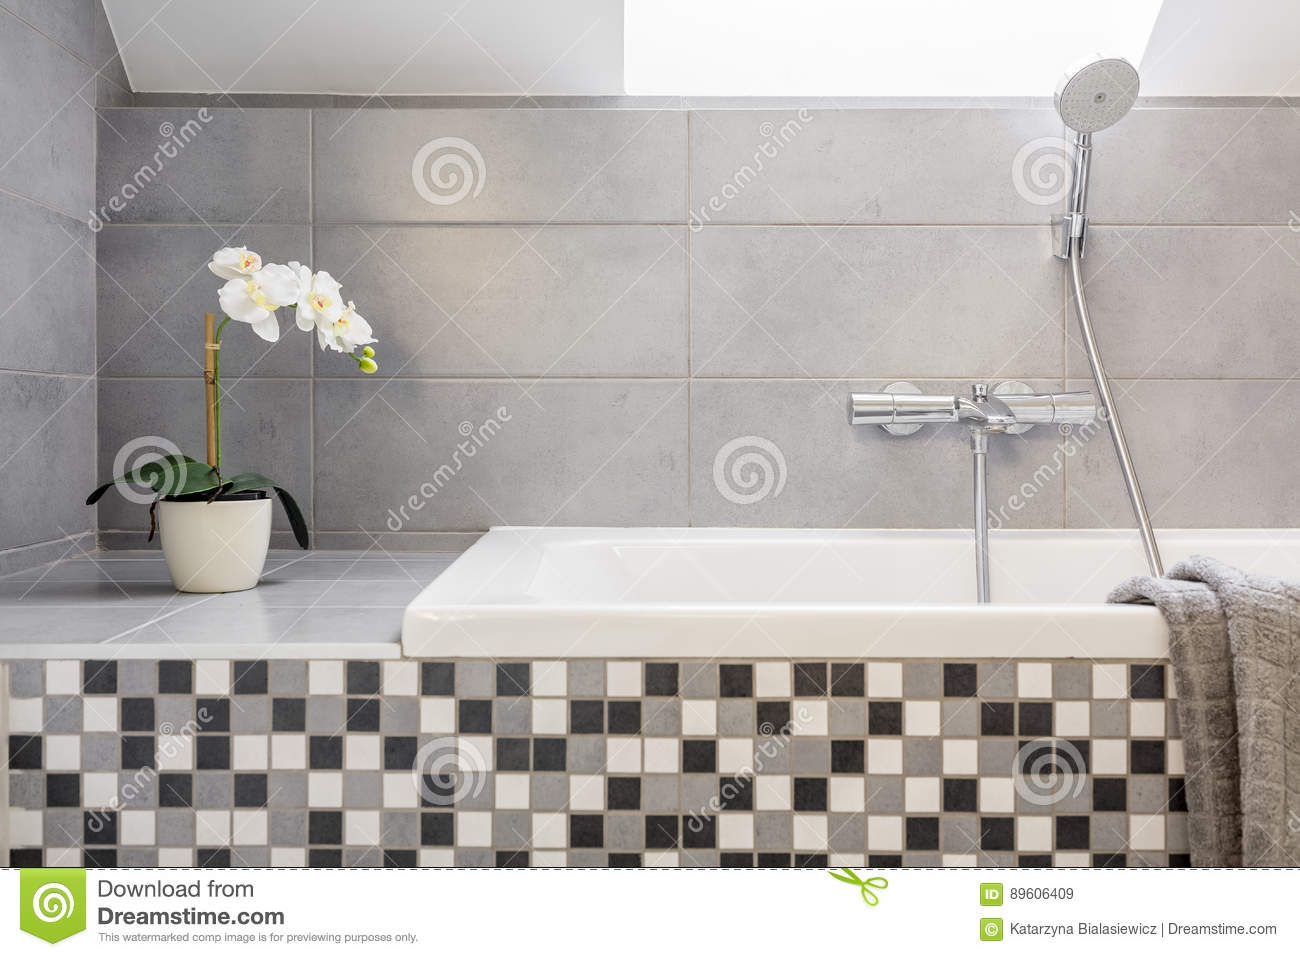 Grey Bathroom With Mosaic Tiles Stock Image - Image of orchid ...